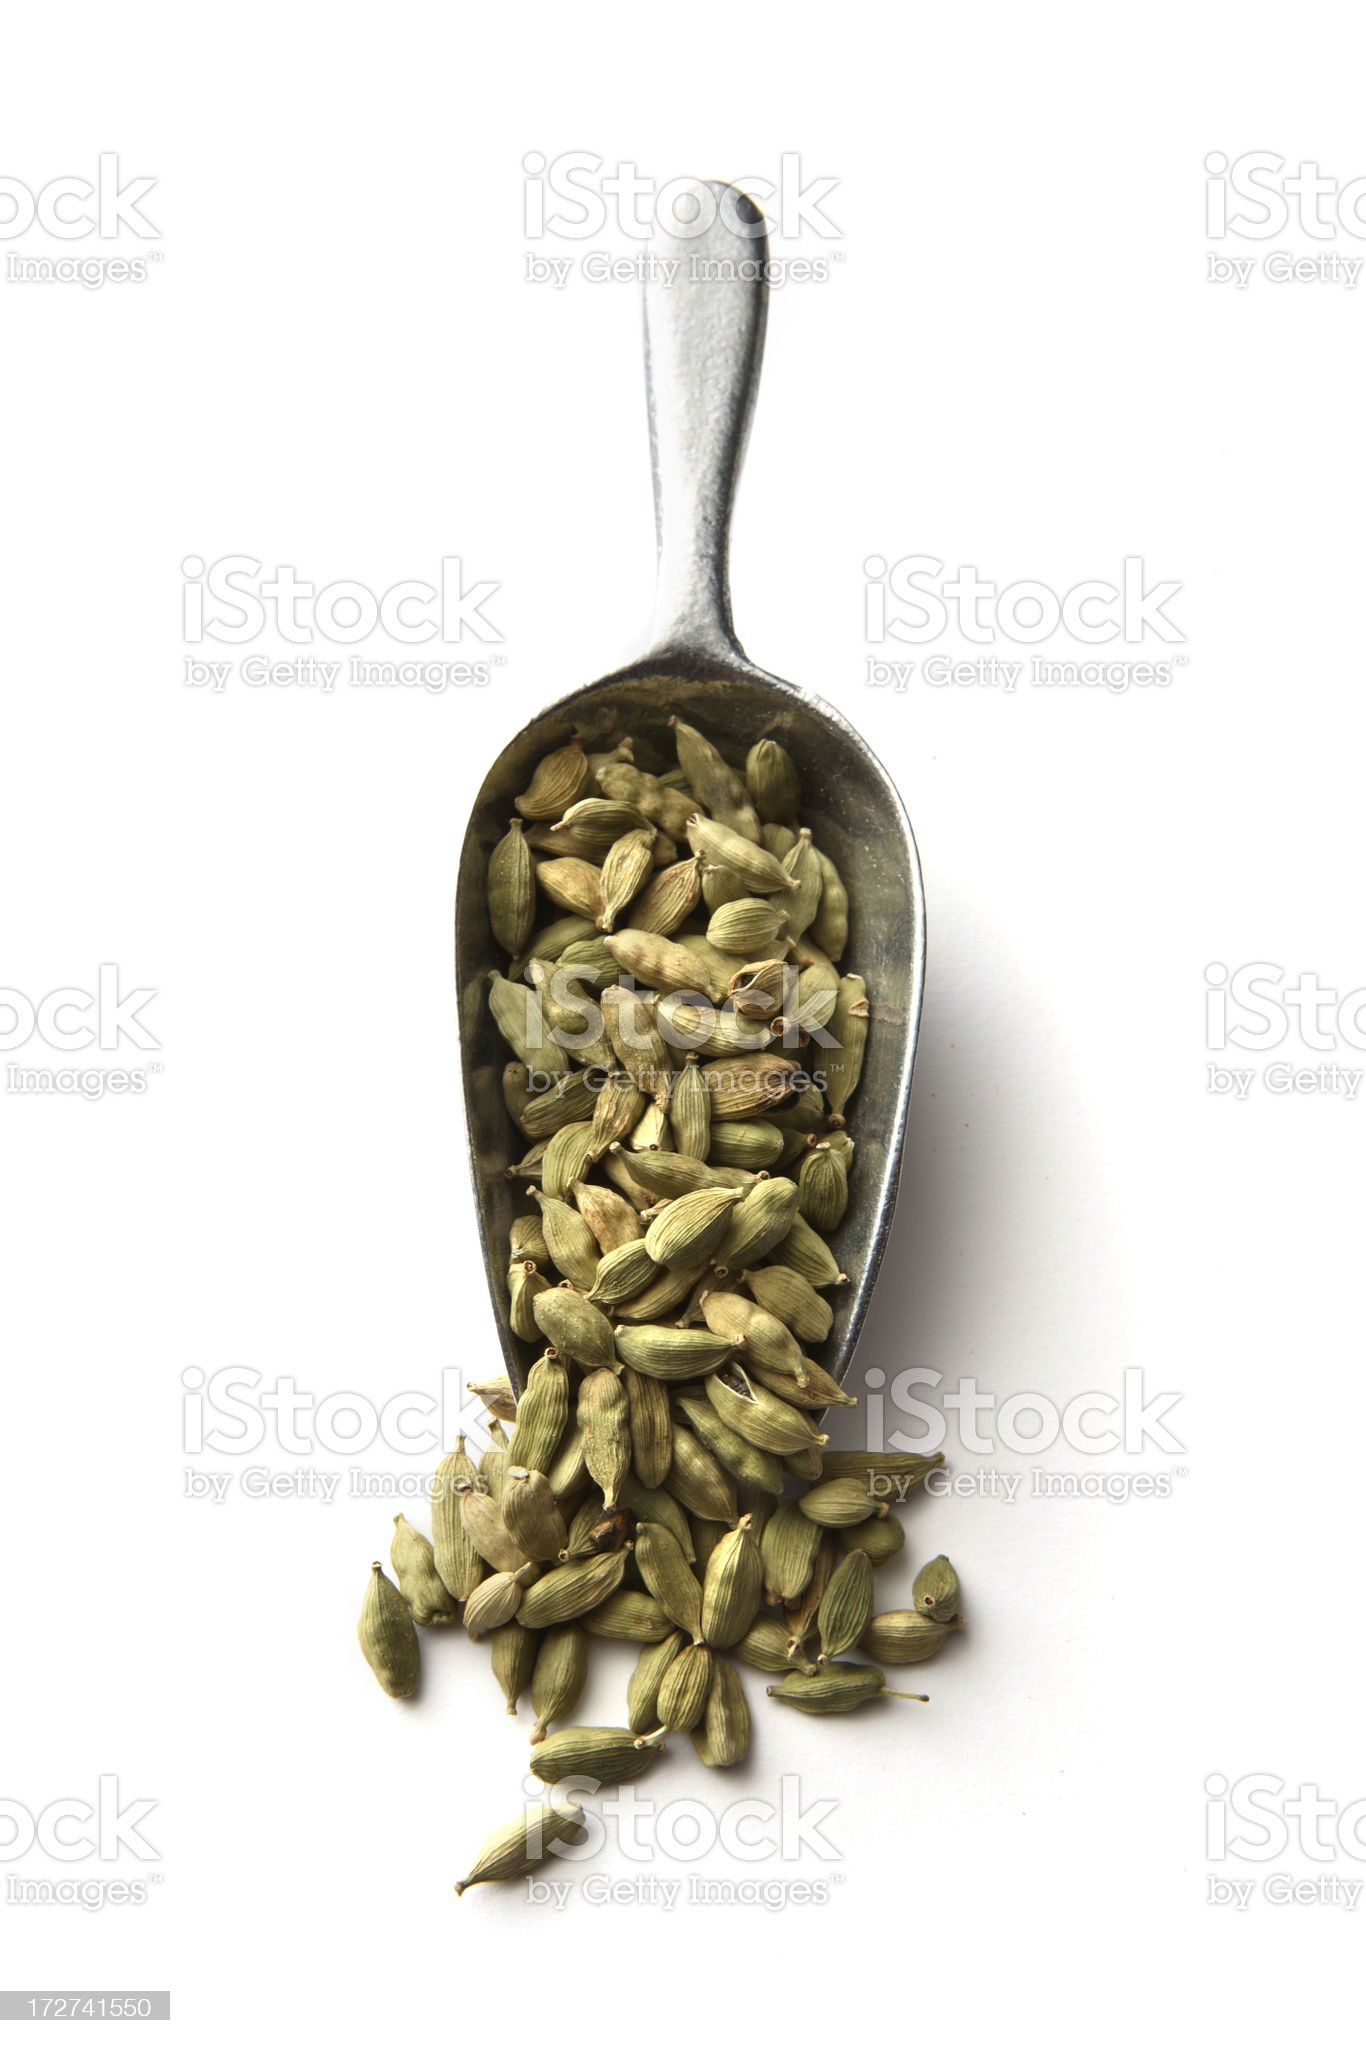 Dried Herbs and Spices: Cardamom royalty-free stock photo